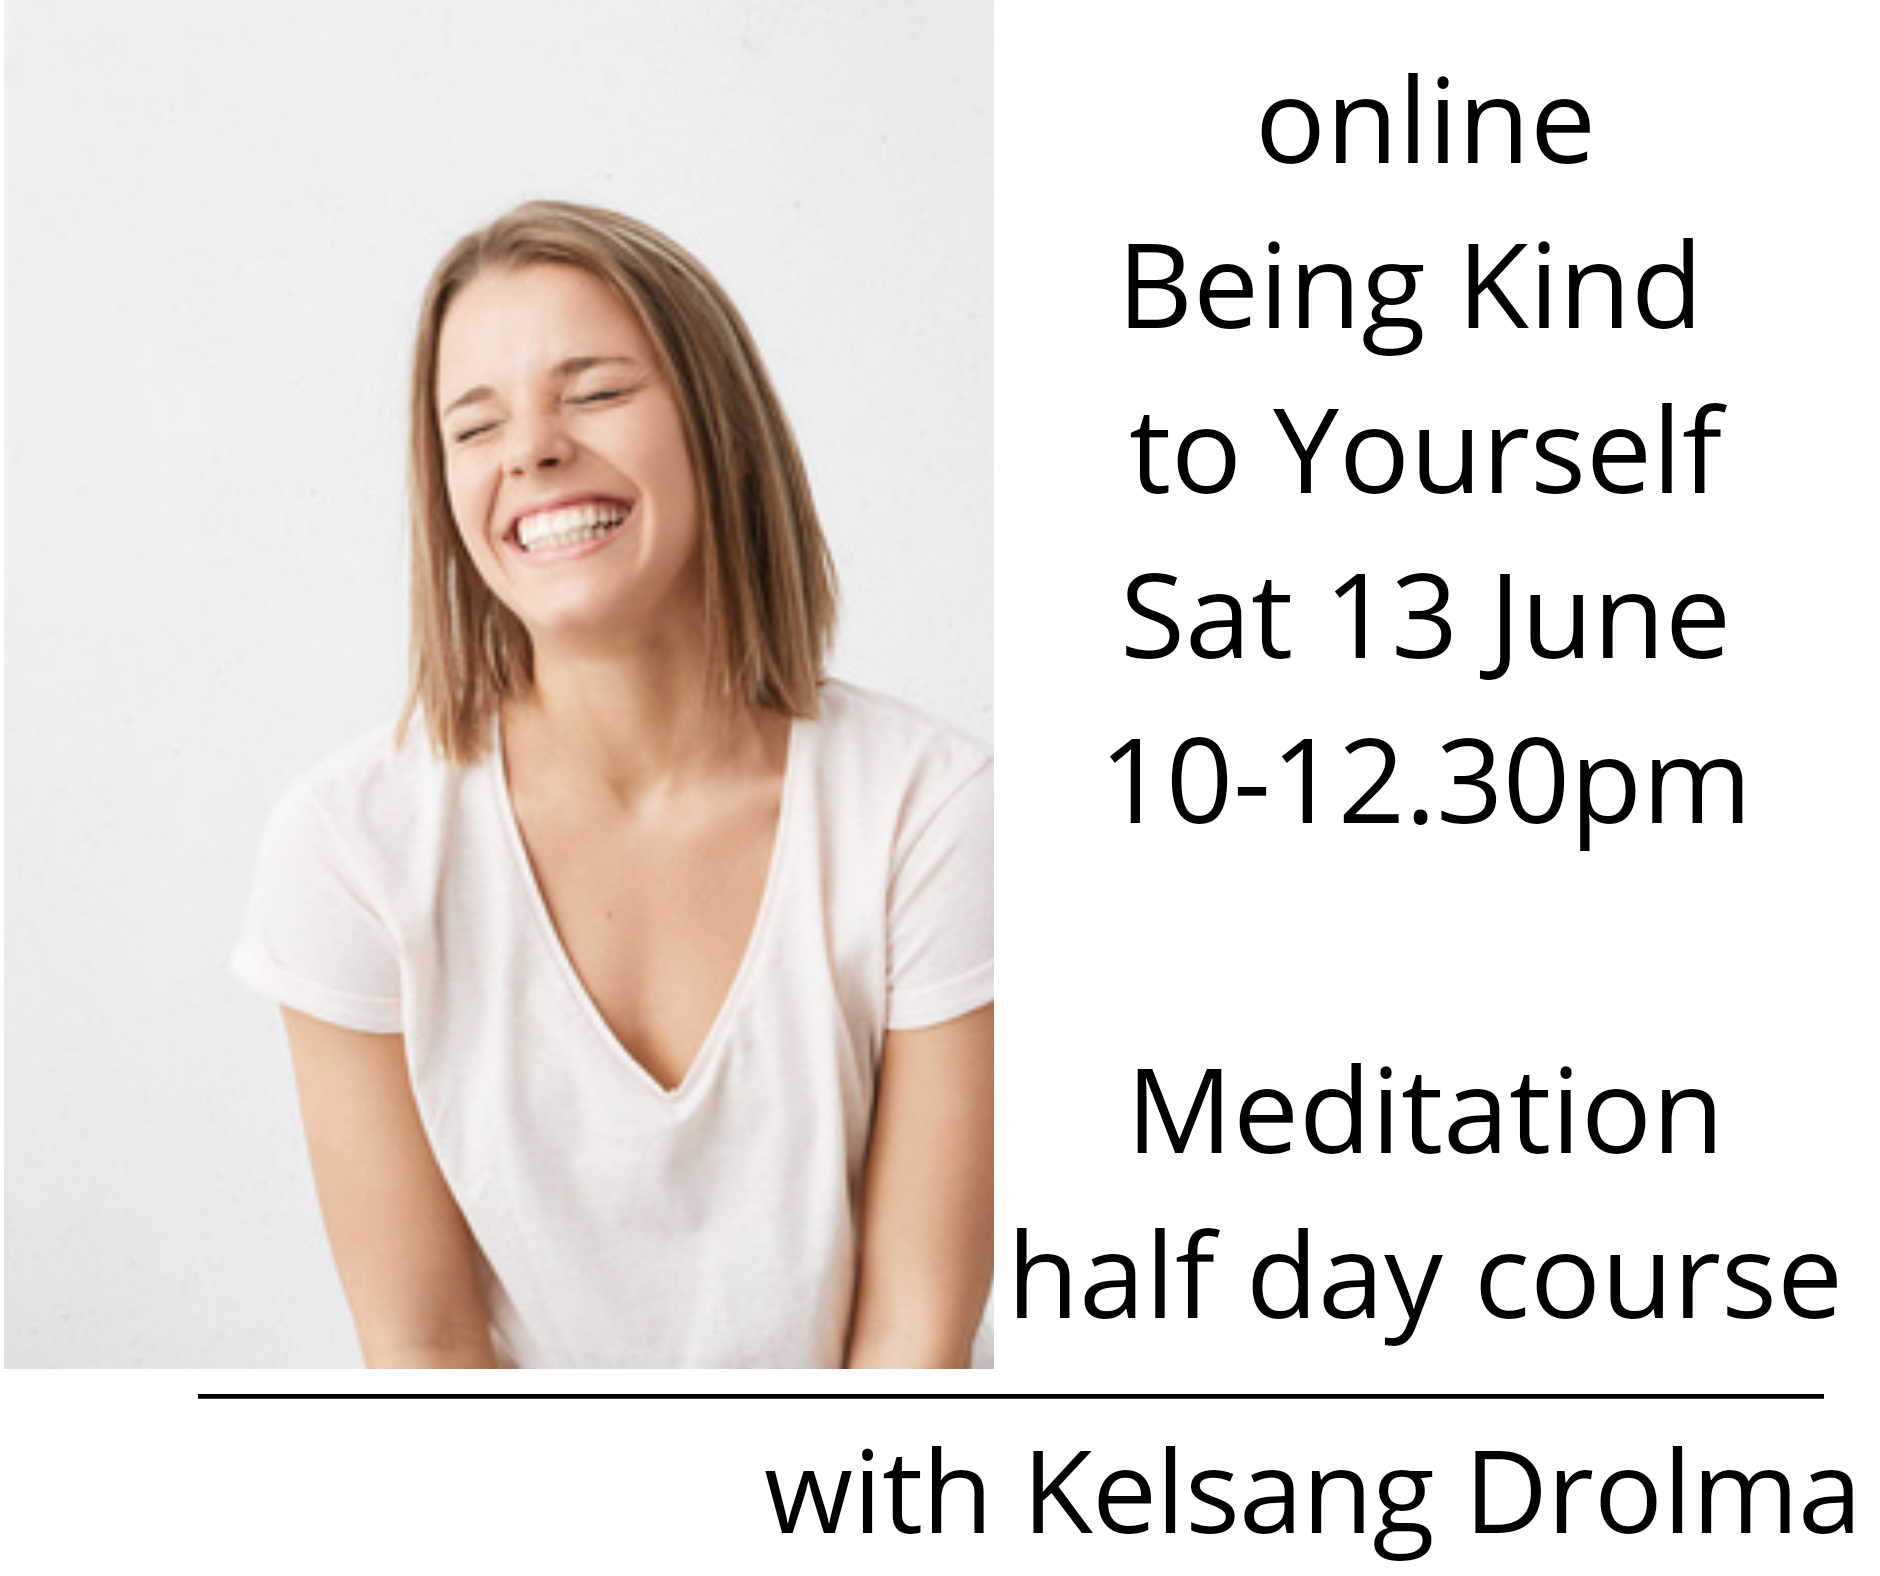 ONLINE MEDITATION COURSE | Being Kind to Yourself | Meditation half day course |with Kelsang Drolma